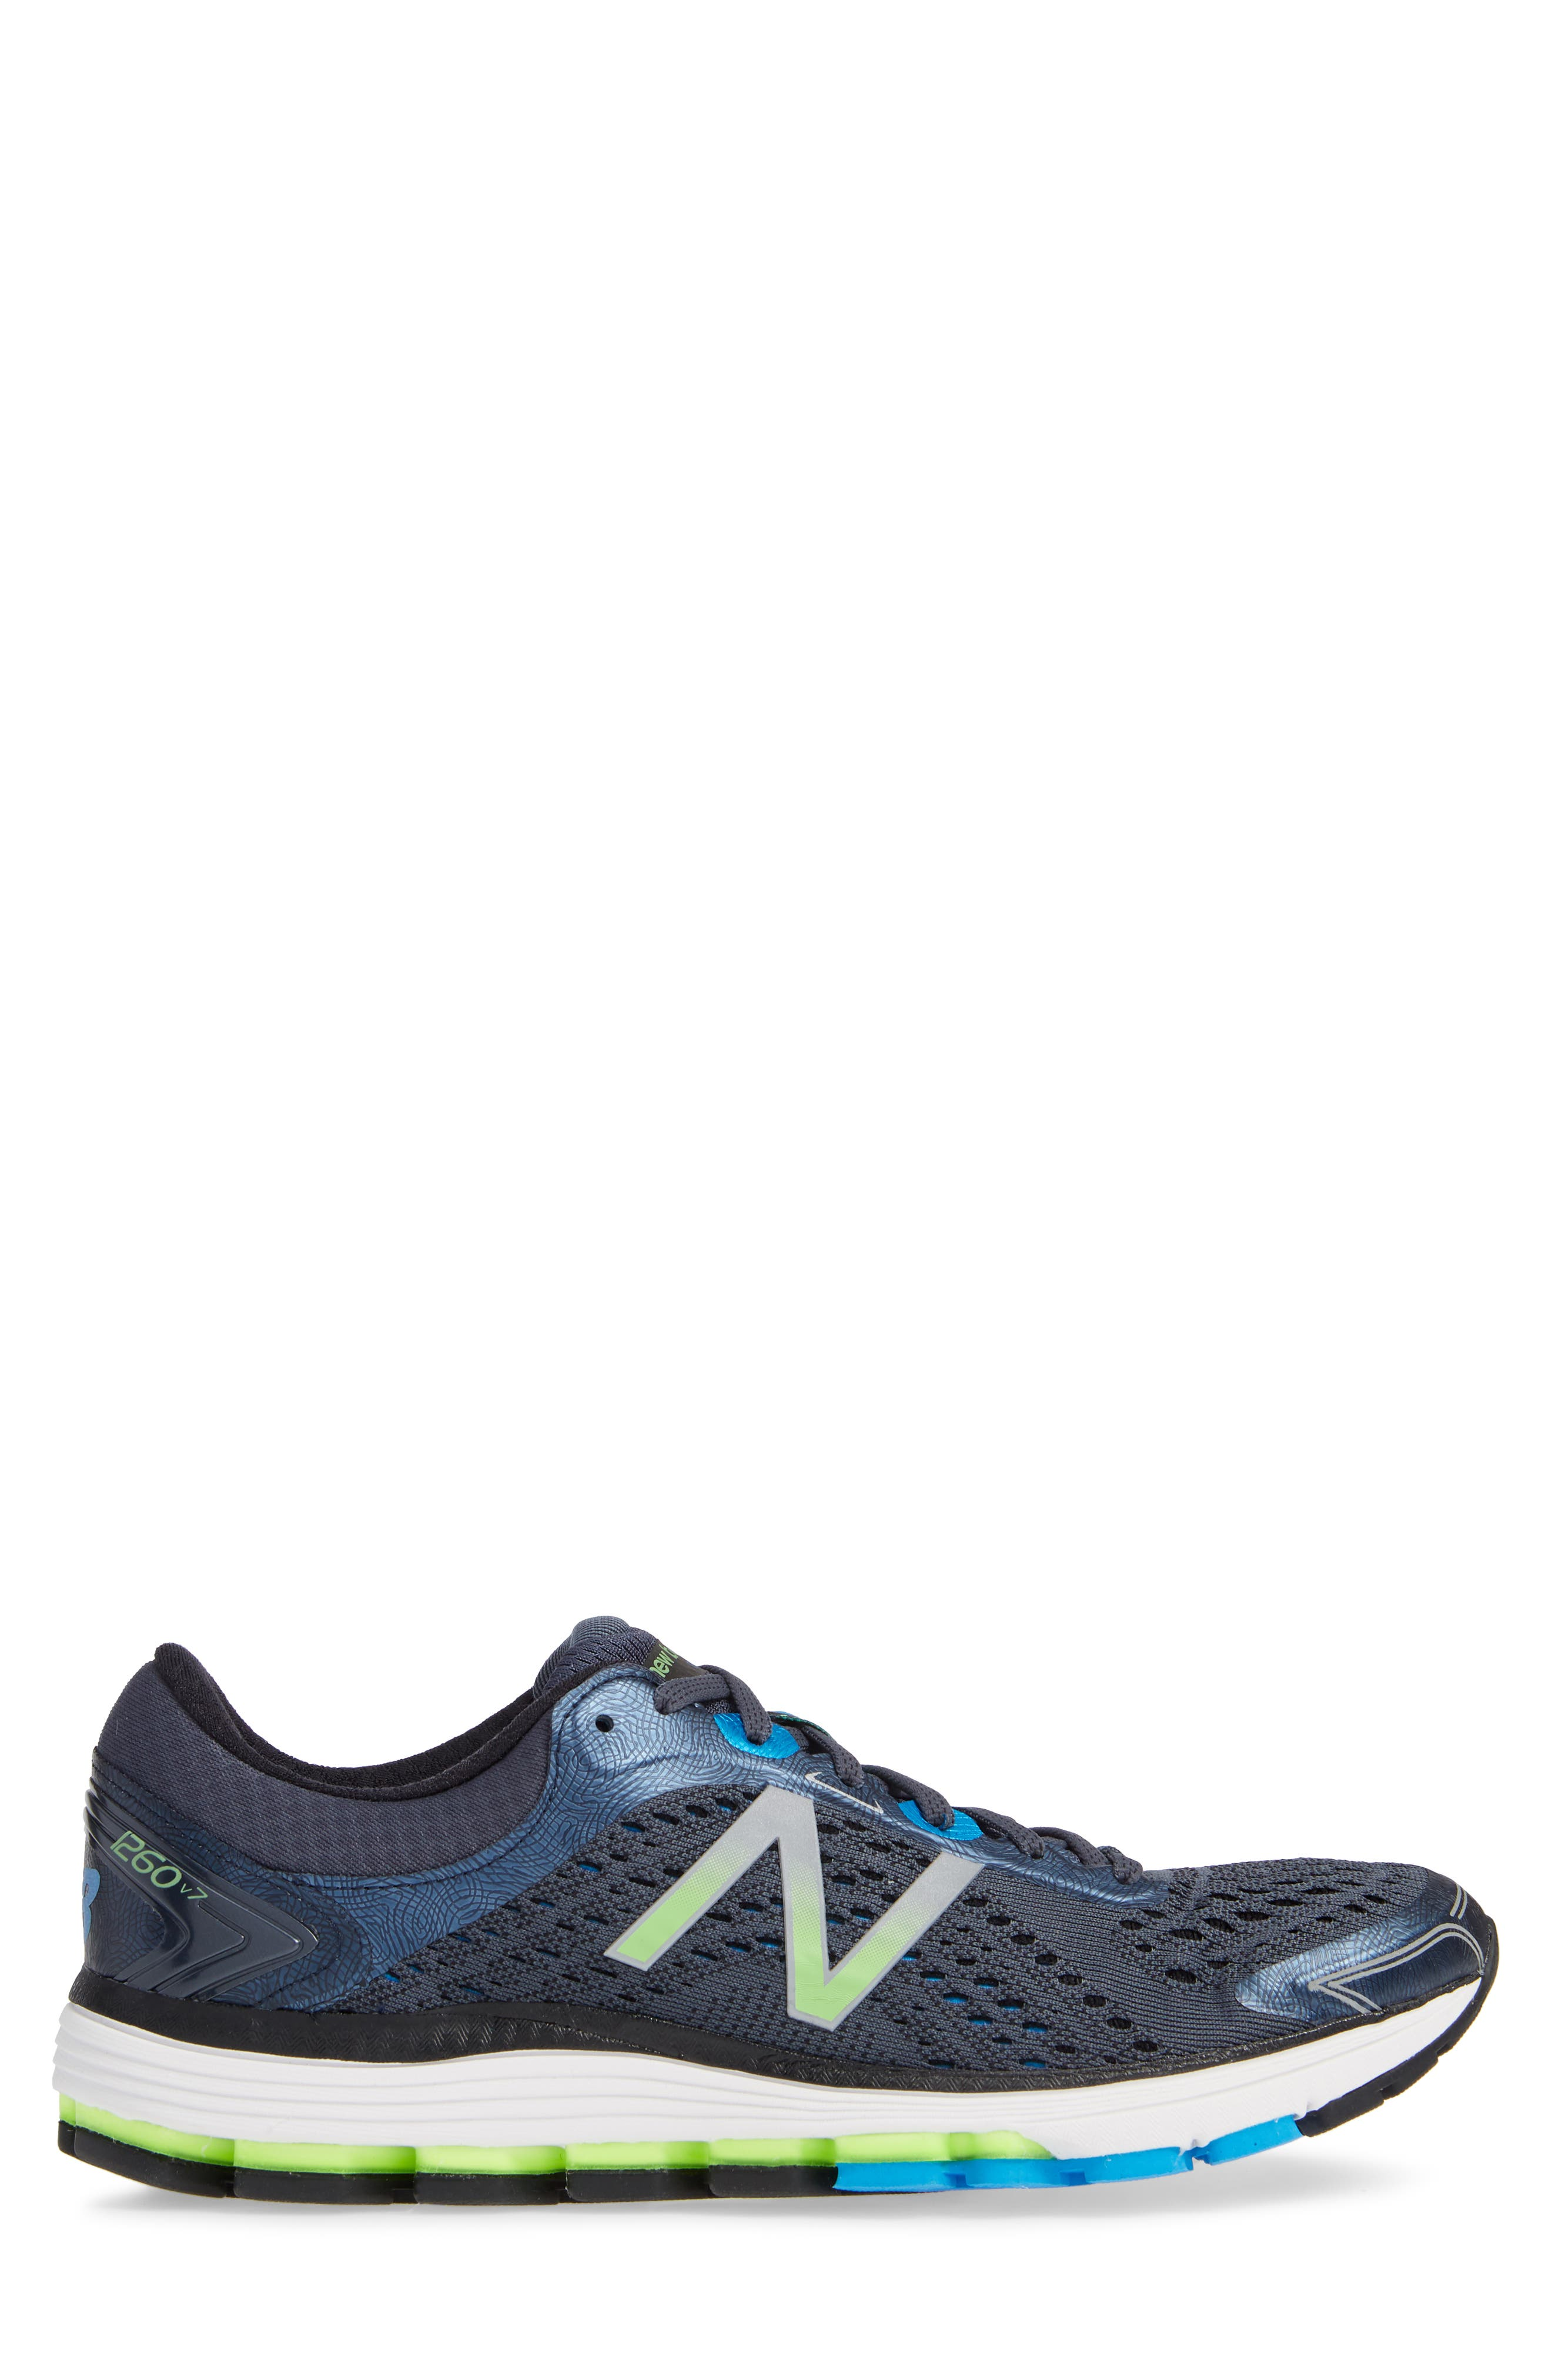 1260v7 Running Shoe,                             Alternate thumbnail 3, color,                             THUNDER